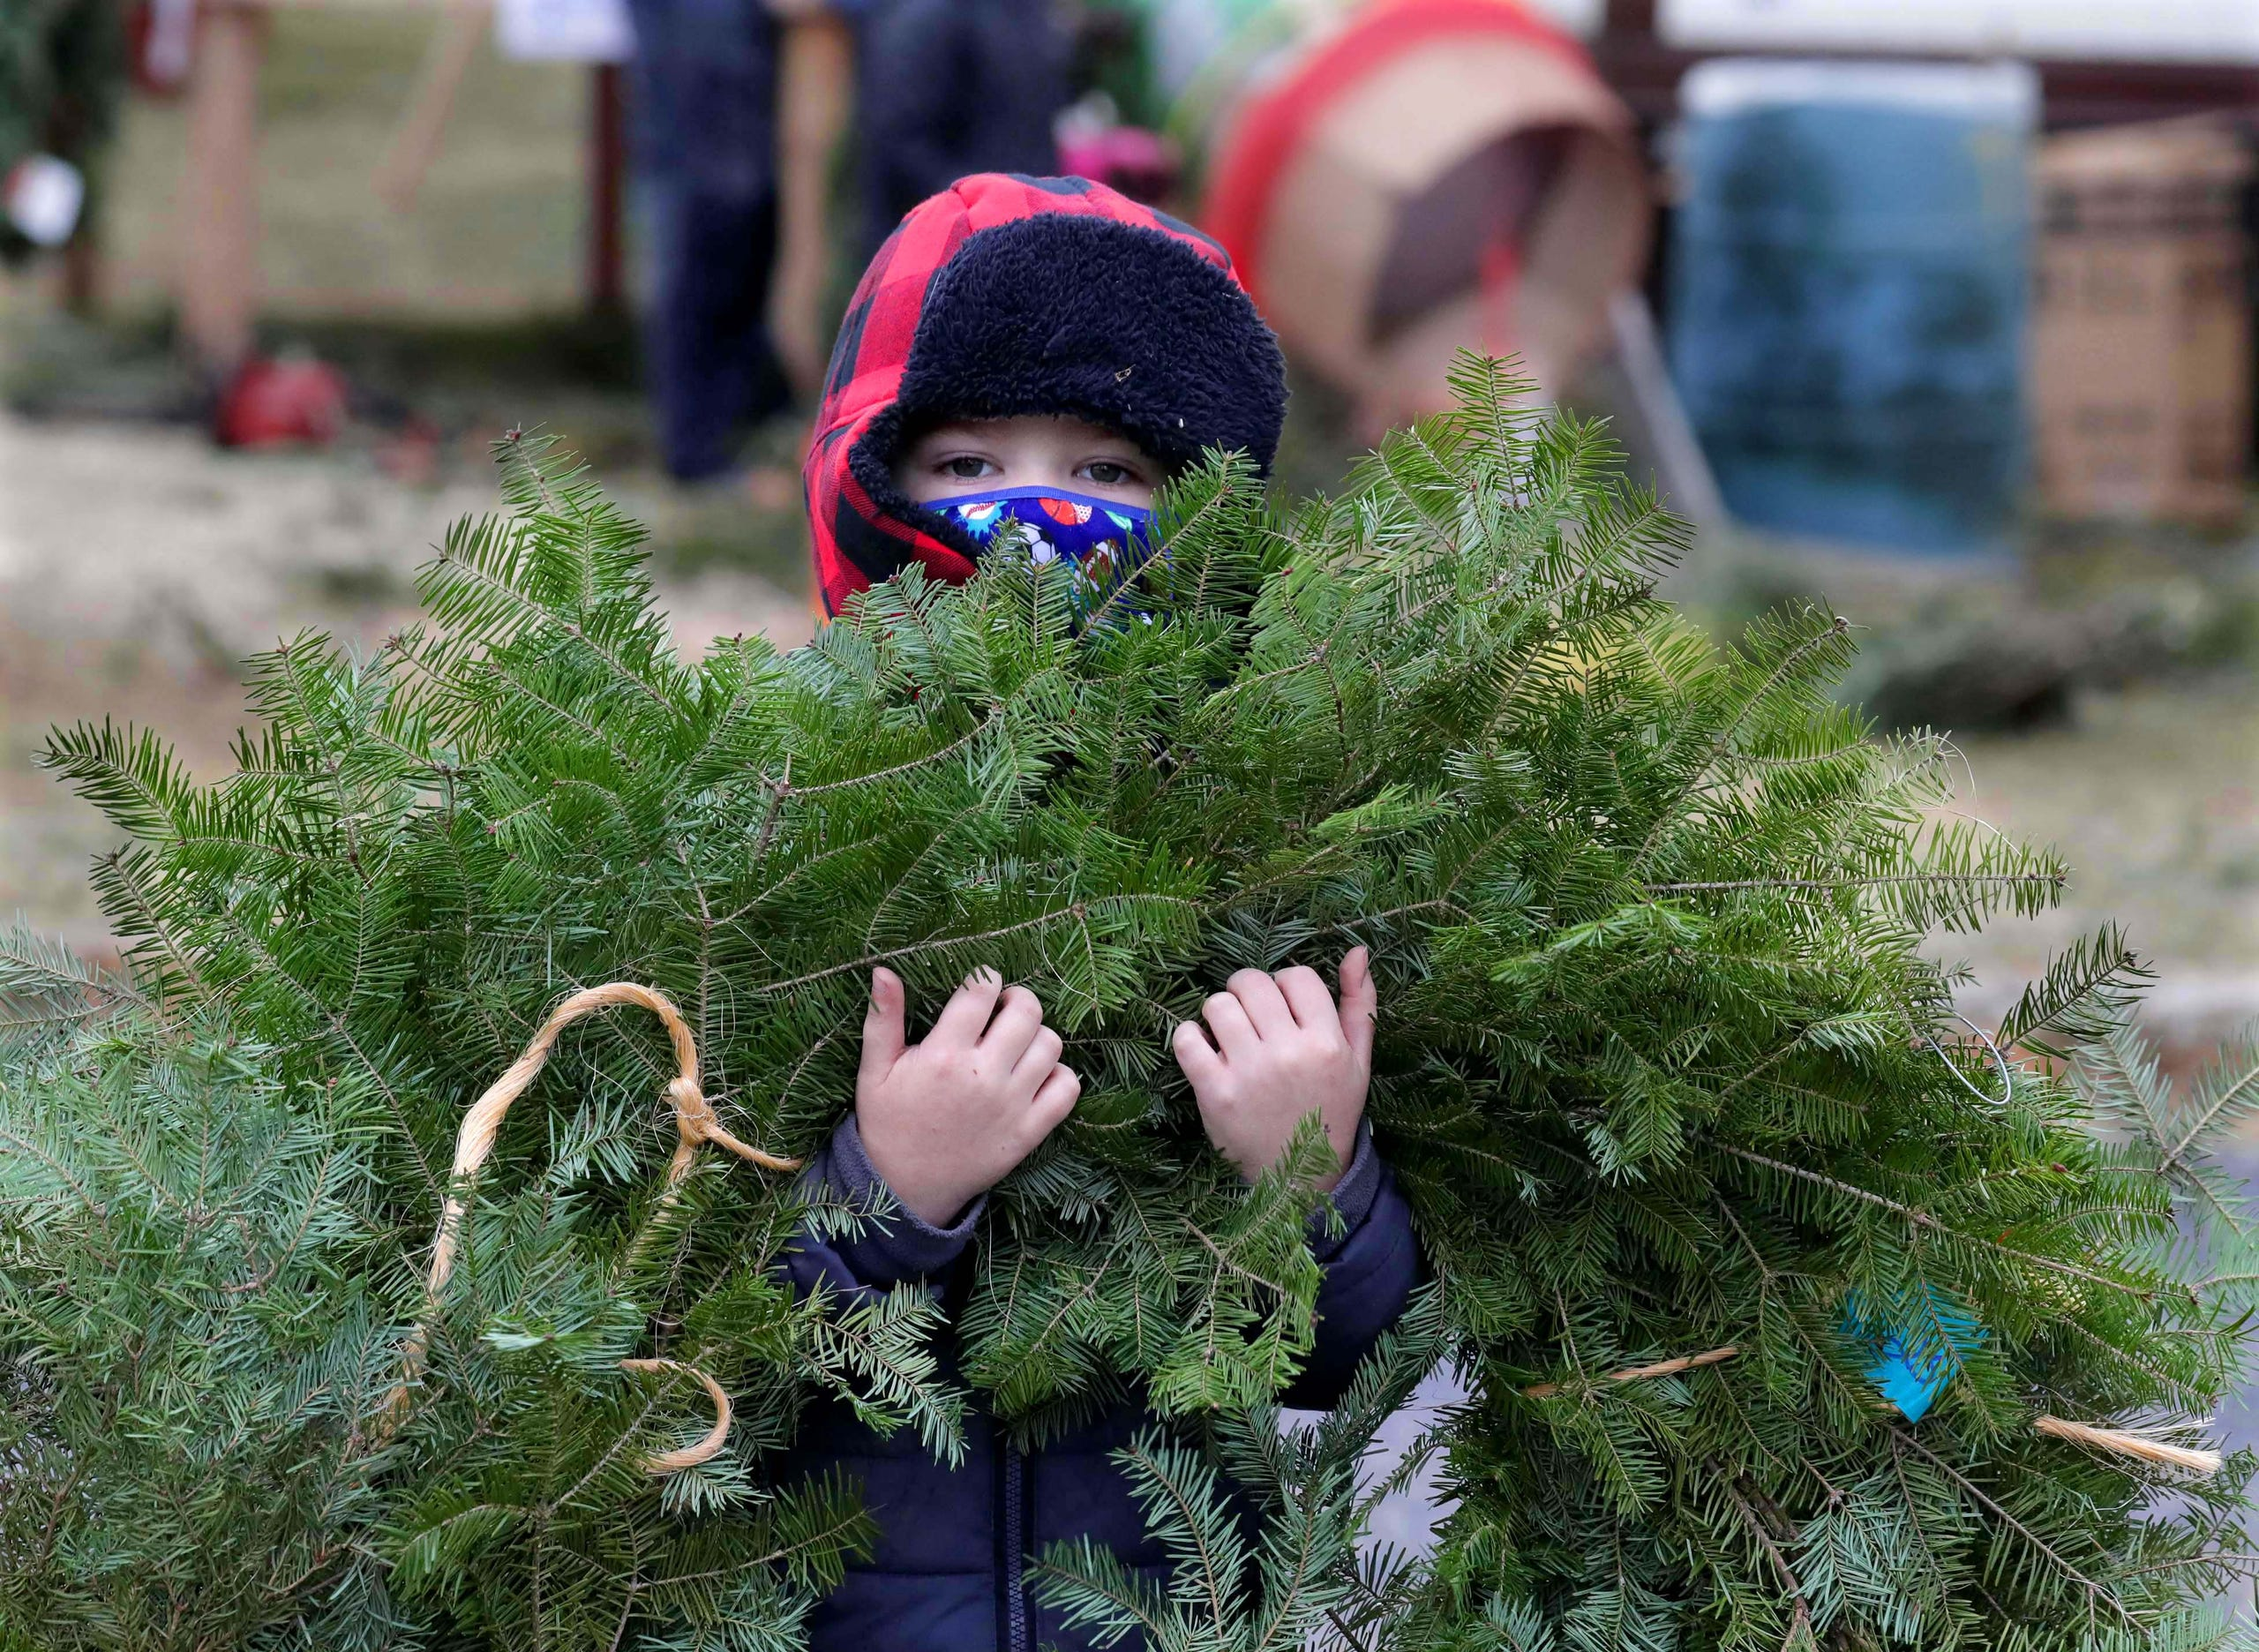 Nicholas Kleinmann, 4, carries a wreath to his parents' vehicle at the Ideal Christmas Trees lot on North Santa Monica Boulevard in Whitefish Bay, Wis. on Sunday, Dec. 6, 2020.